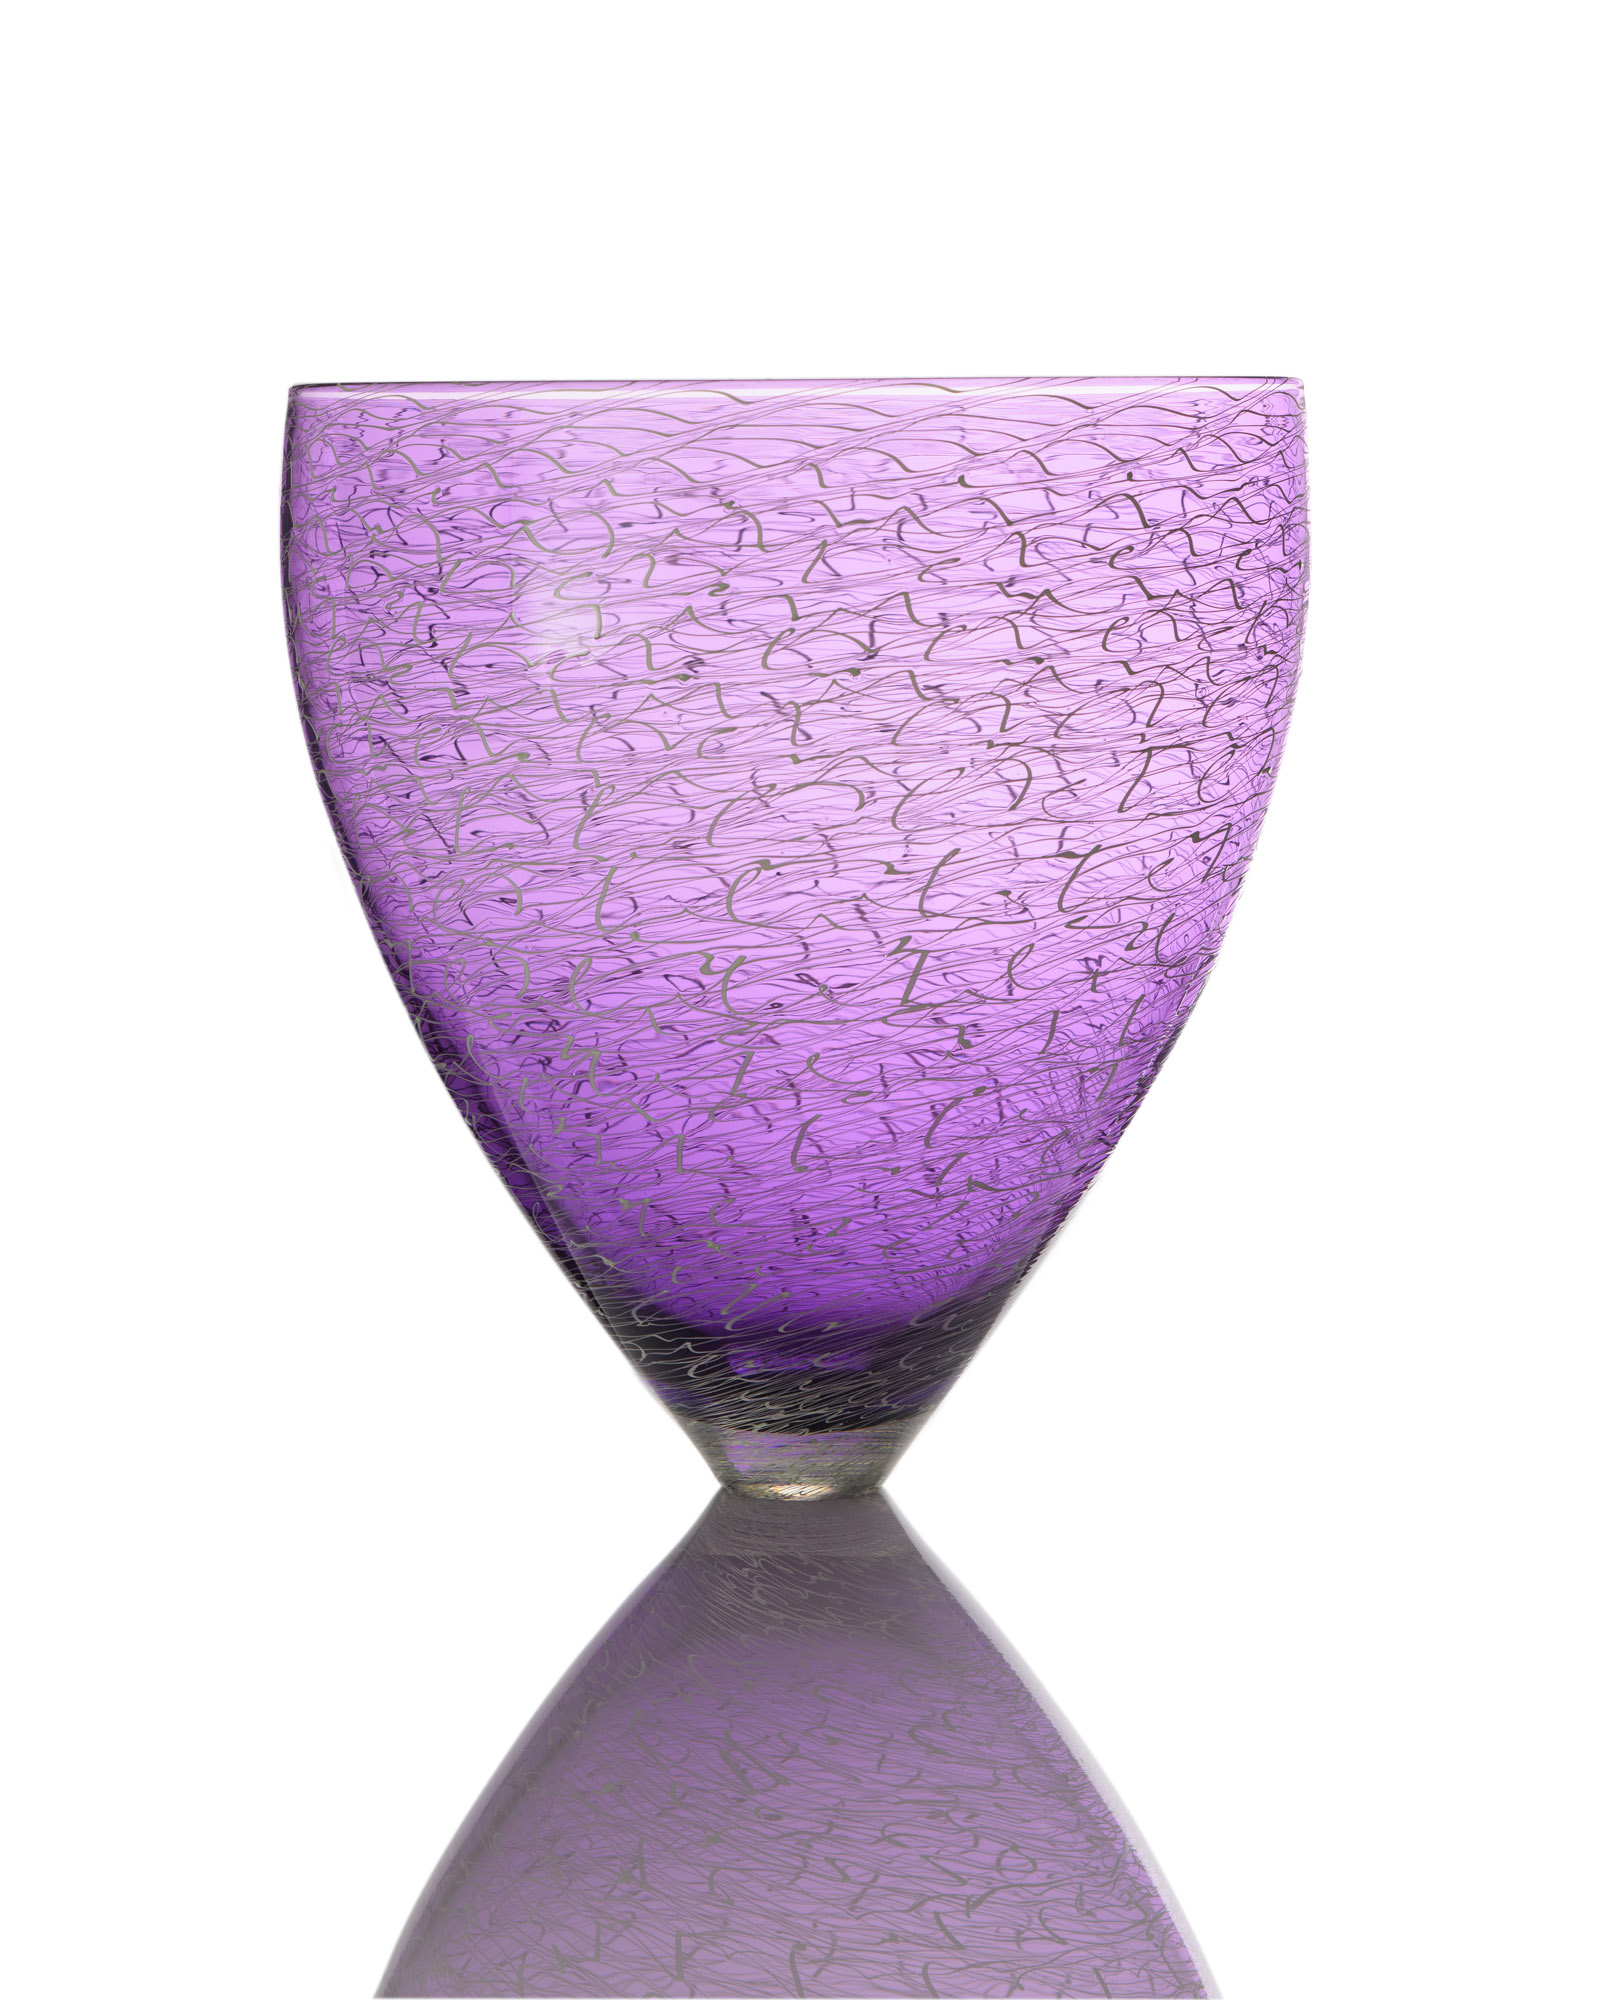 Marea Large Bowl - Hyacinth Purple_Seafoam